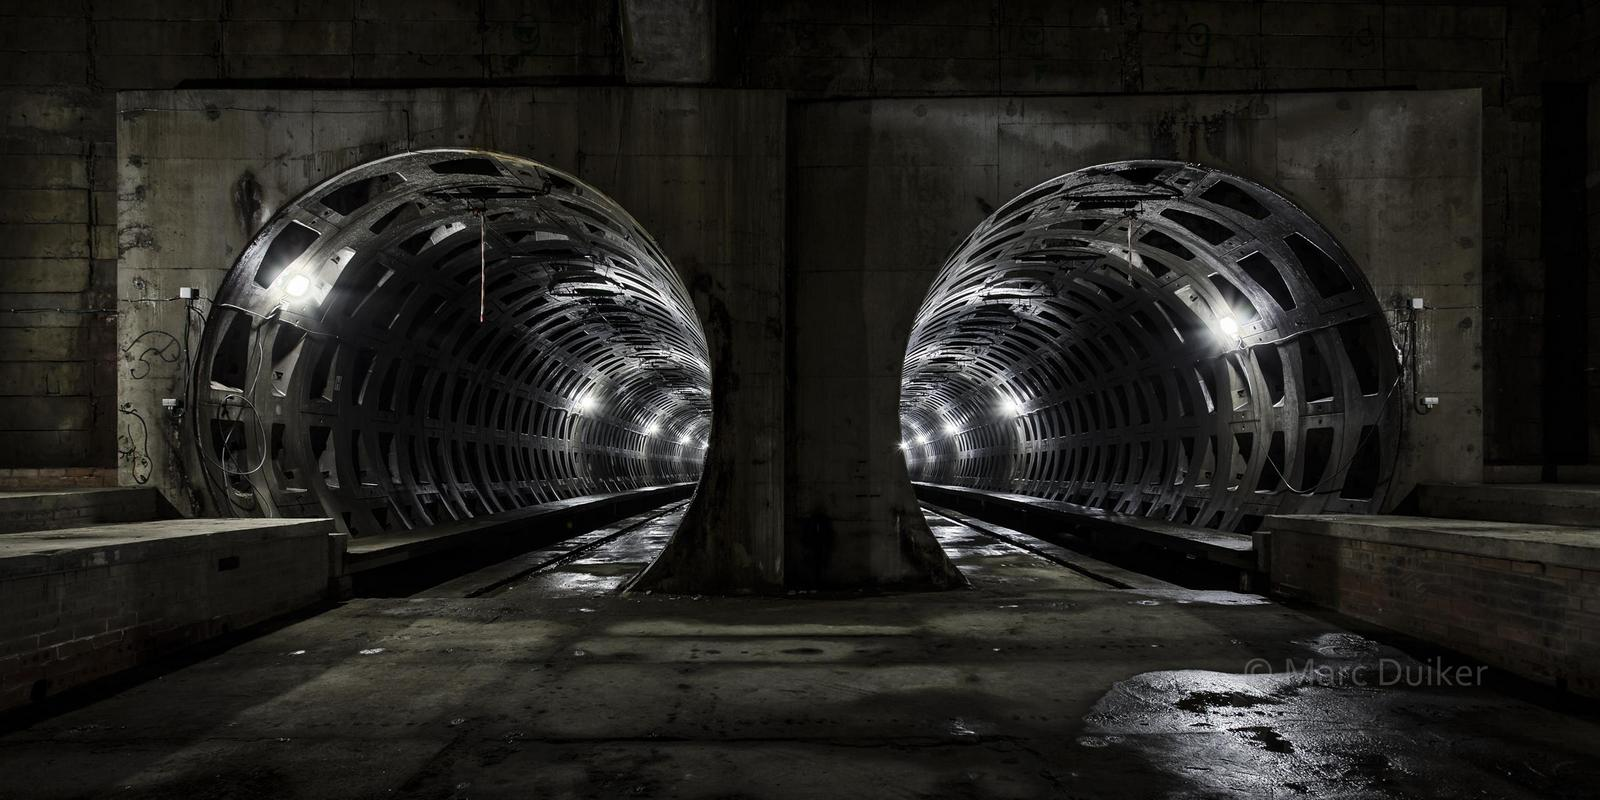 'Tunnel vision II' © by Marc Duiker